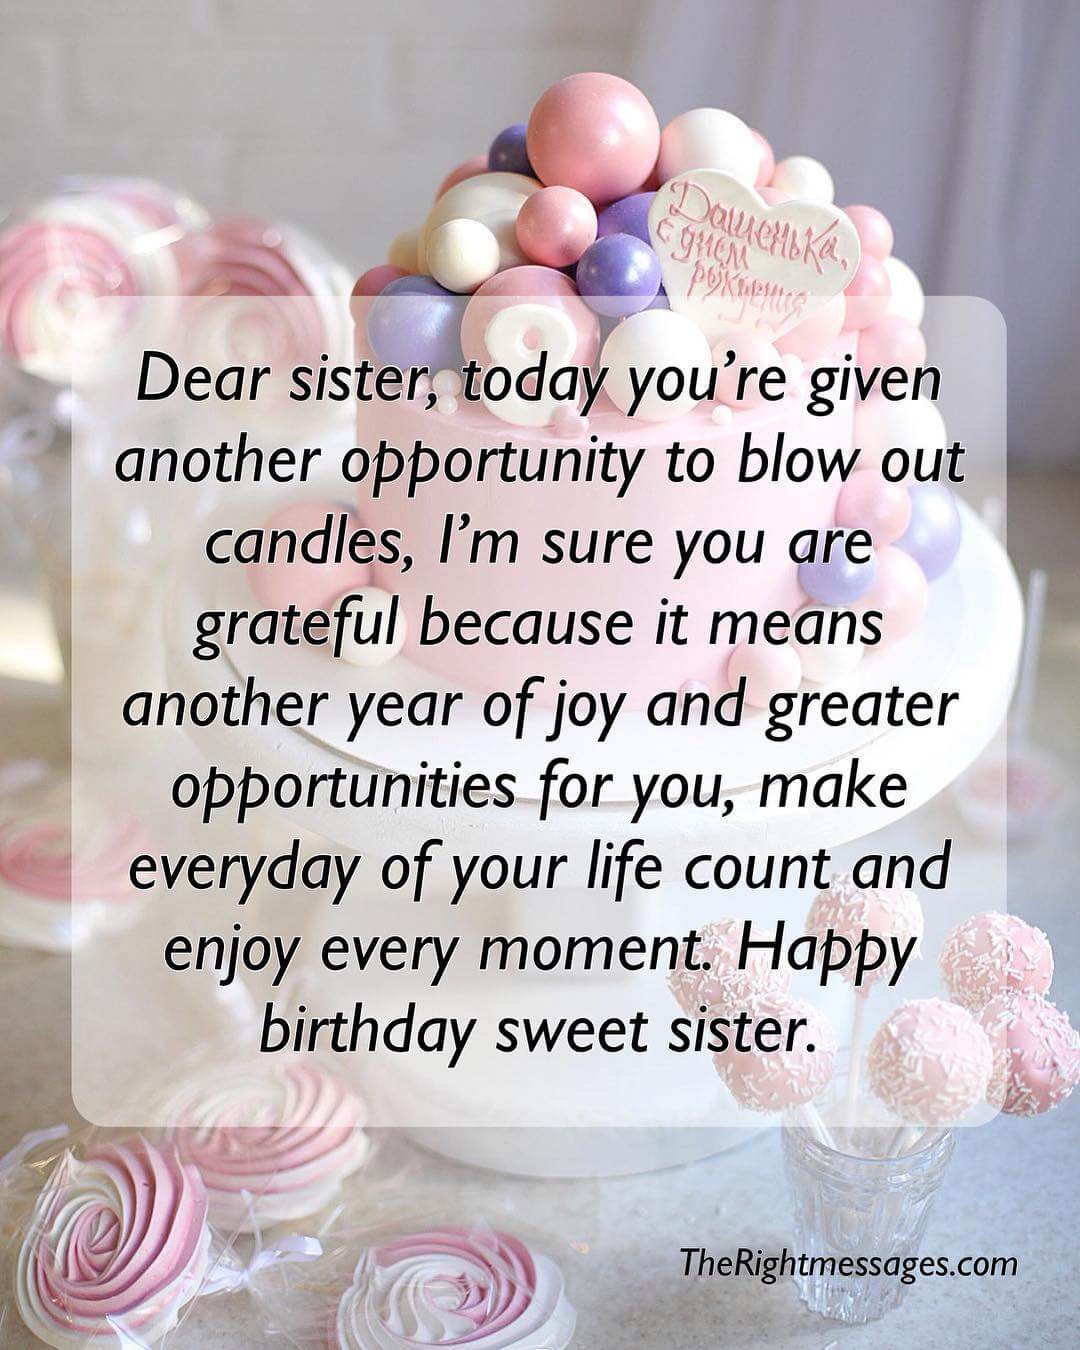 Quotes For A Sister Birthday  Short And Long Birthday Messages Wishes & Quotes For